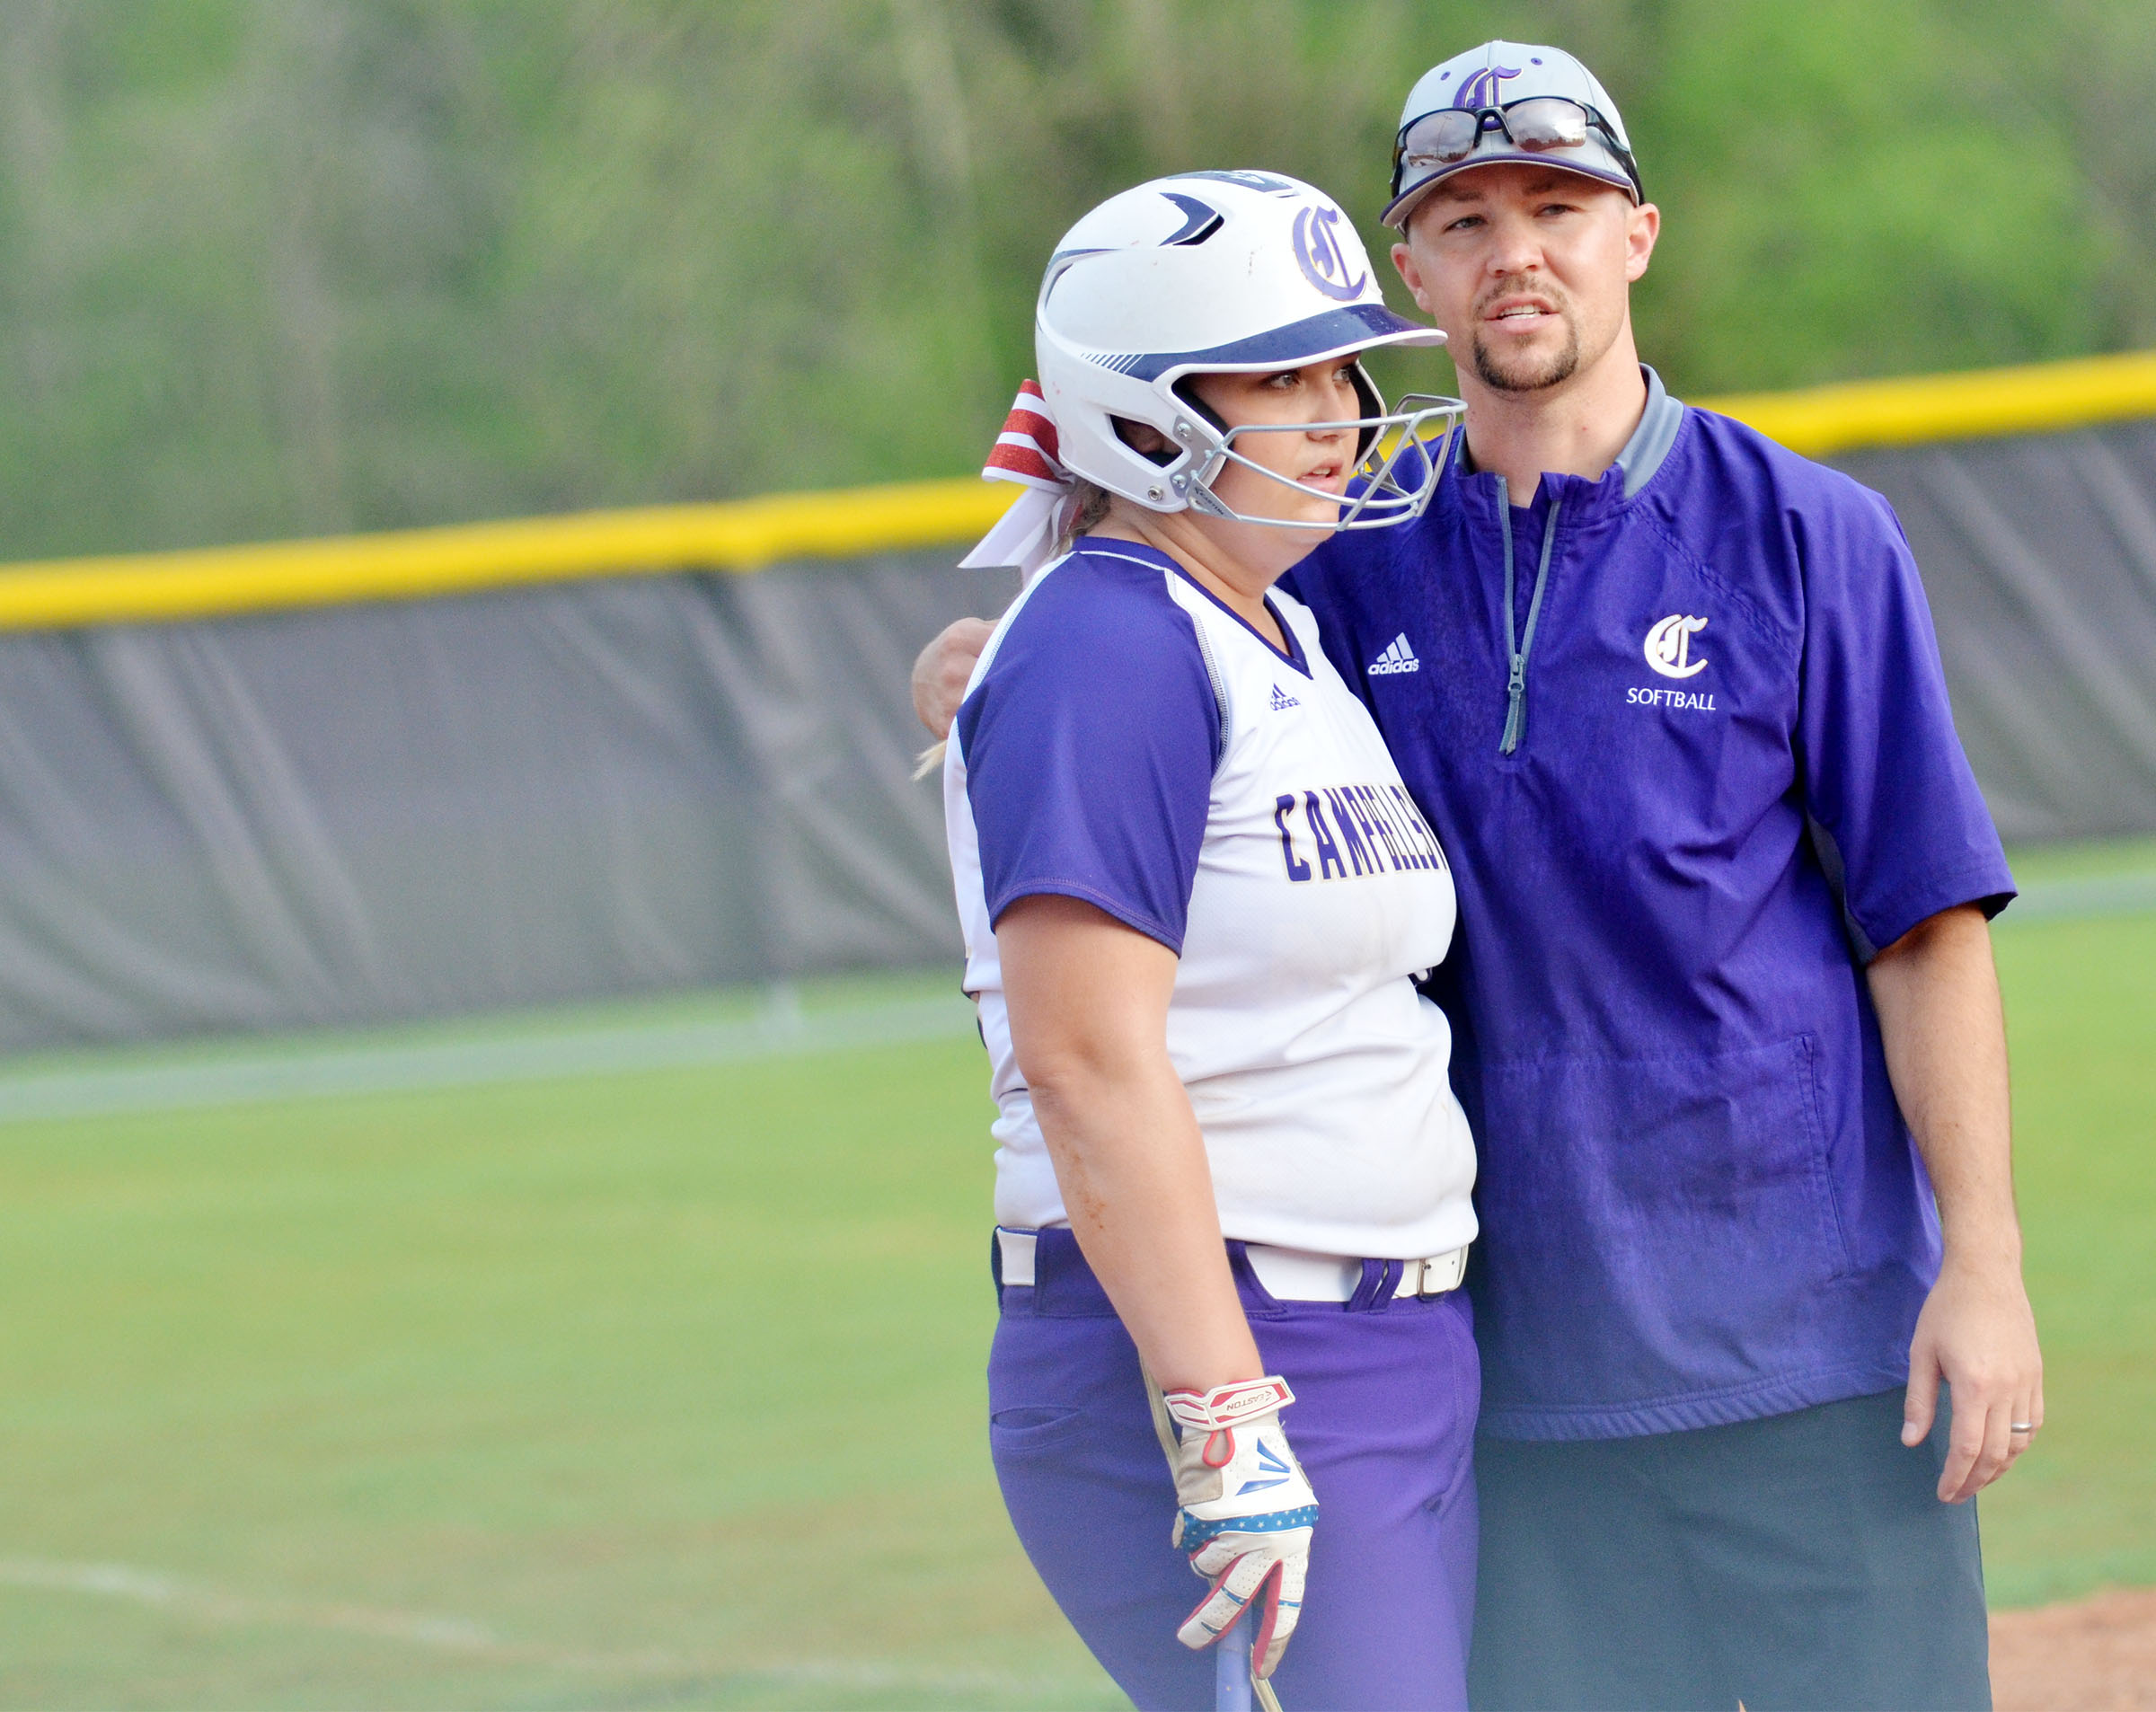 CHS head softball coach Weston Jones talks with senior Brenna Wethington before she bats.